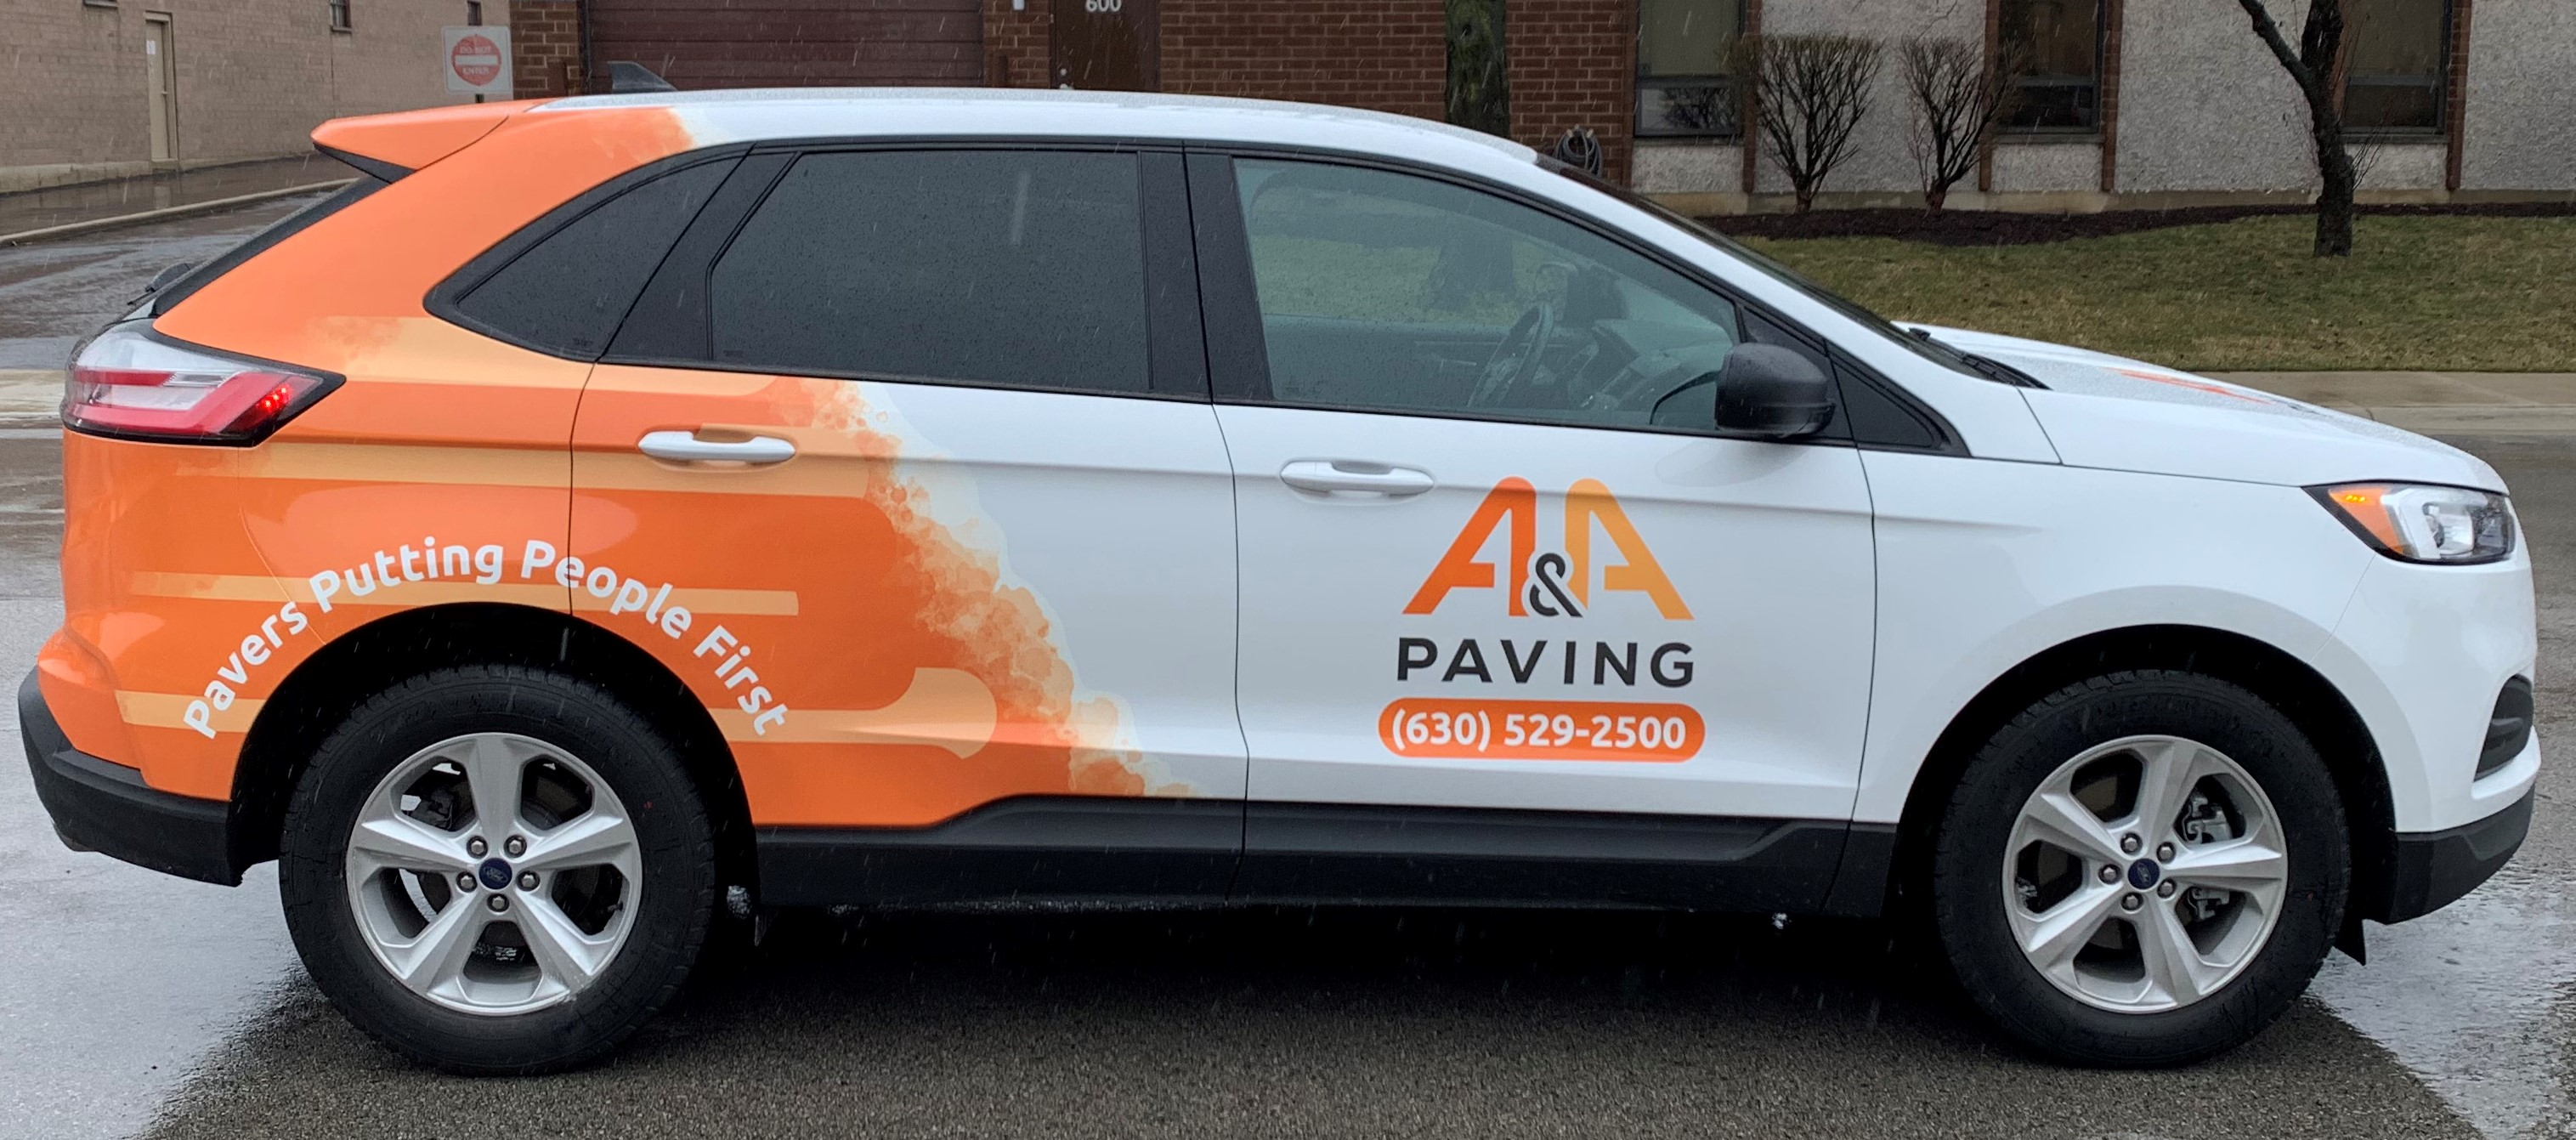 A&A Paving Vehicle Wrap